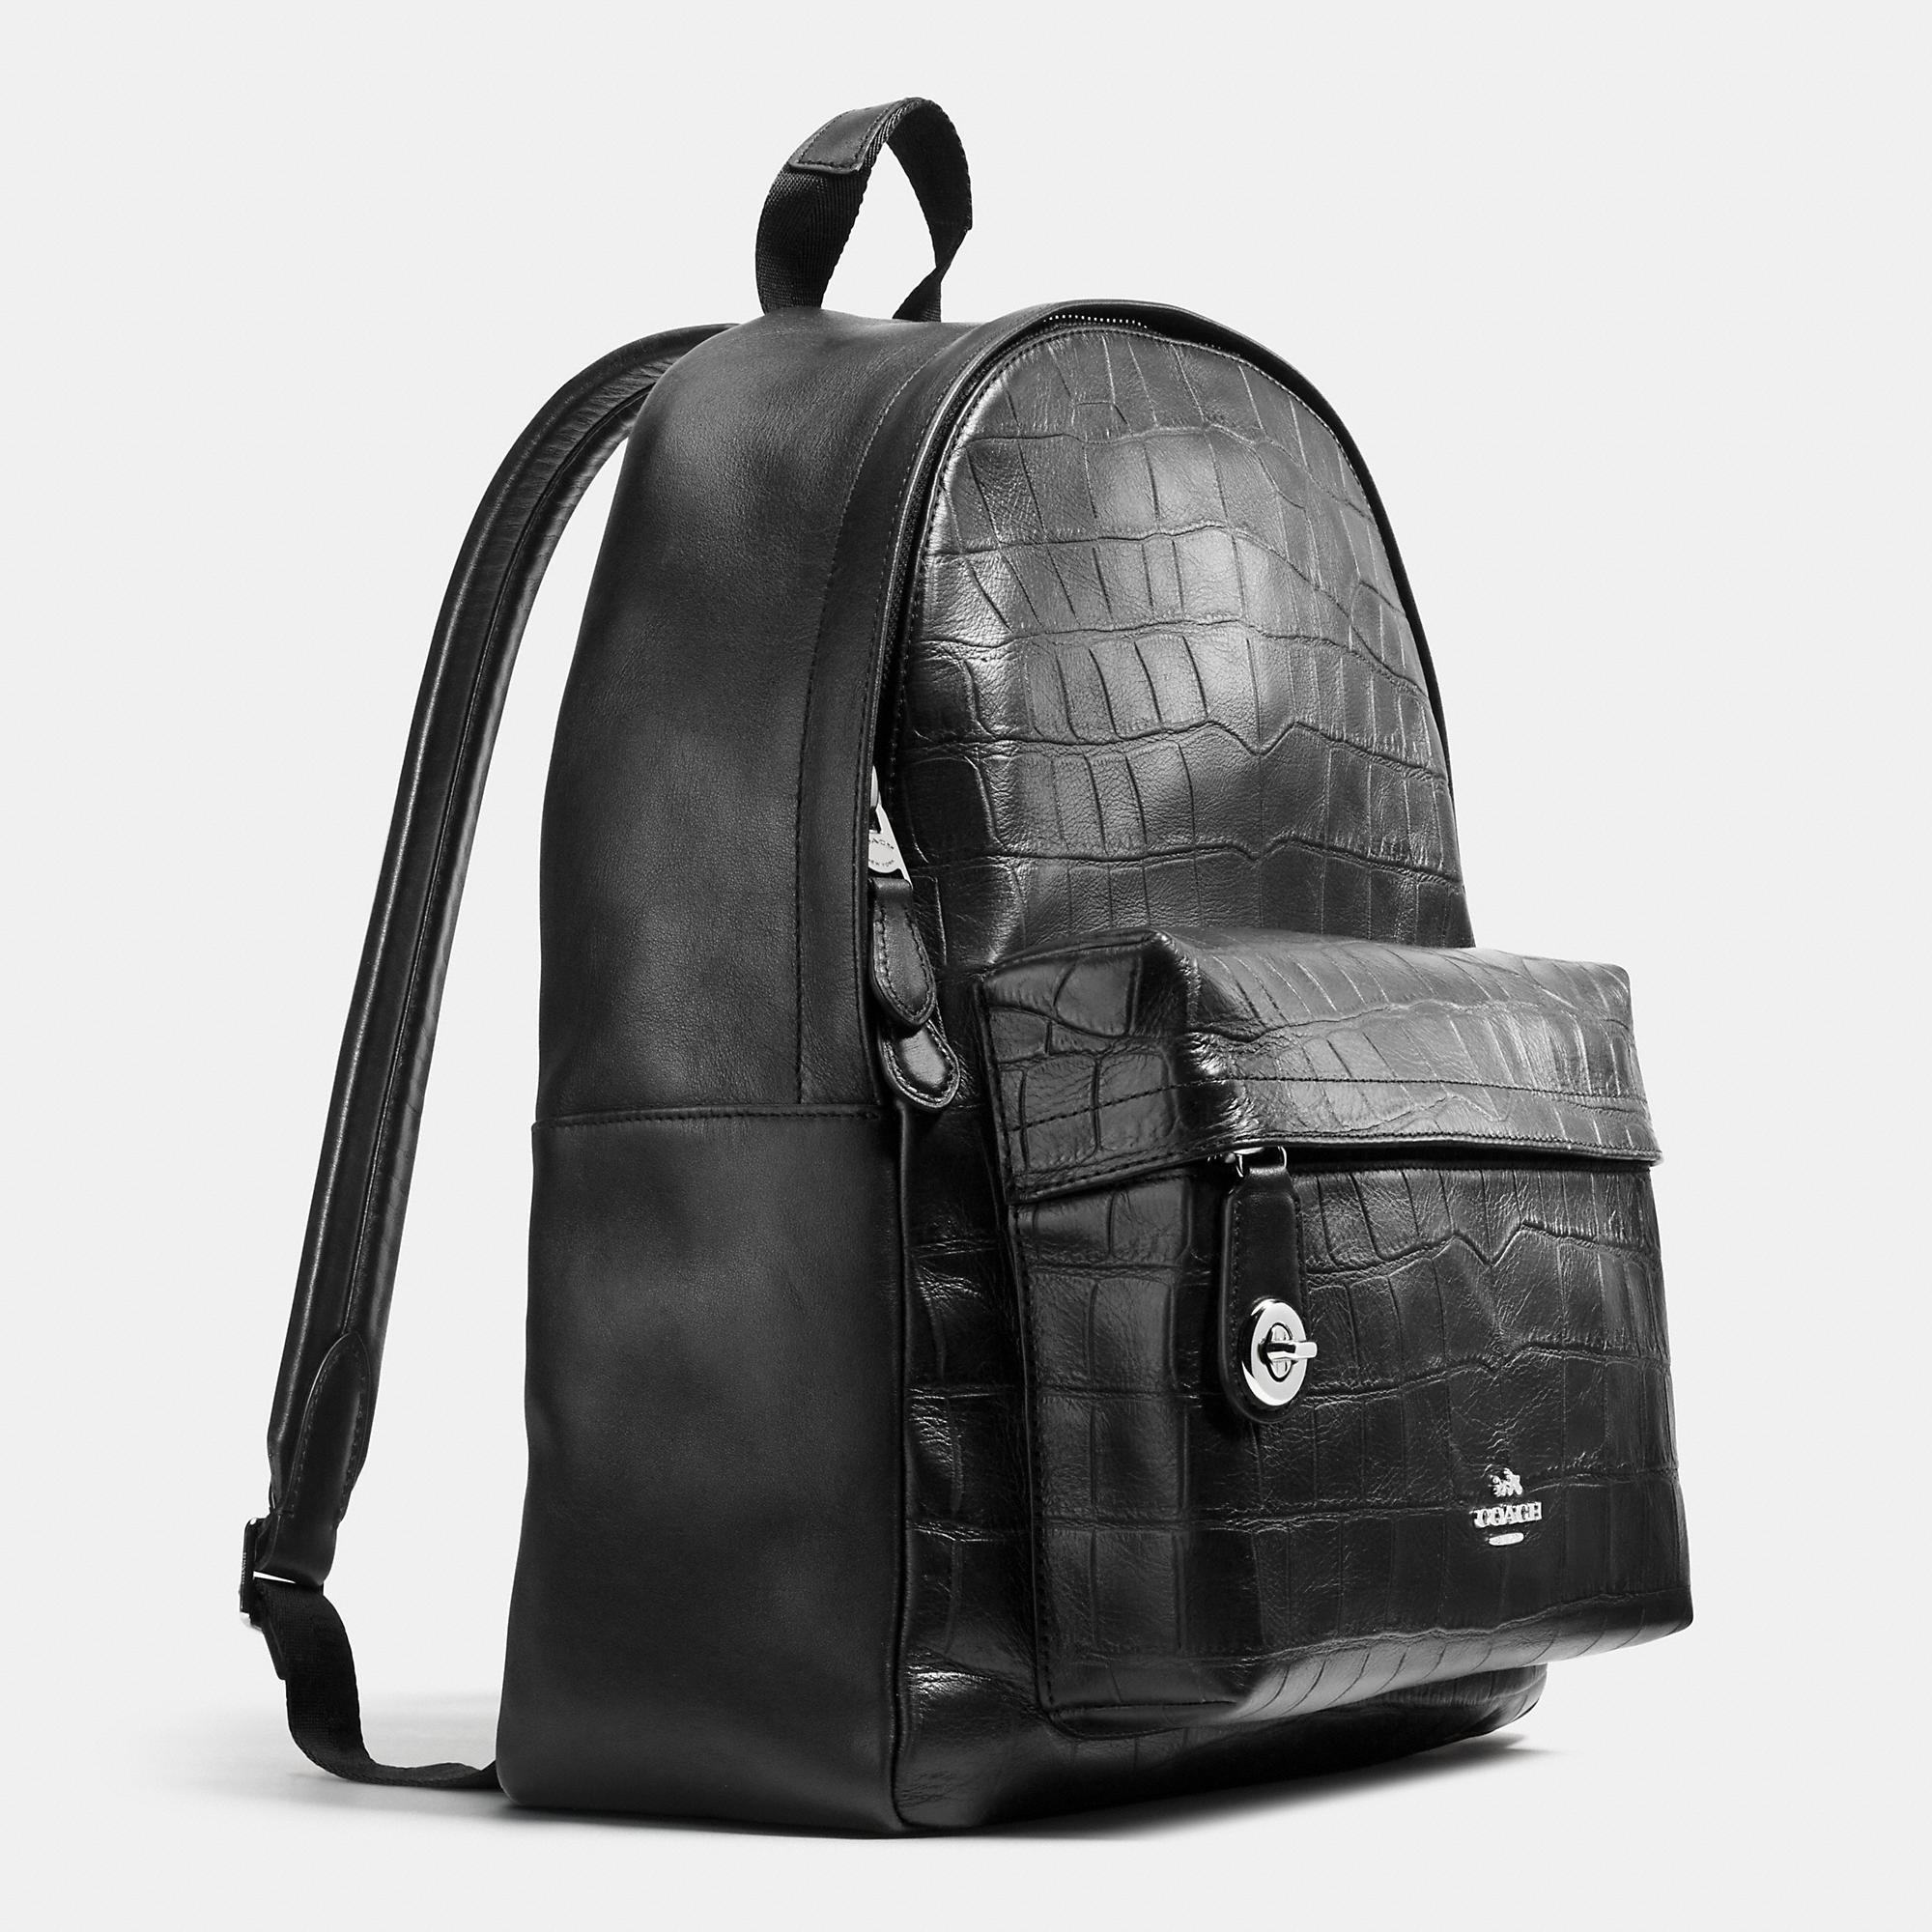 Coach Campus Backpack In Croc Embossed Leather in Black | Lyst